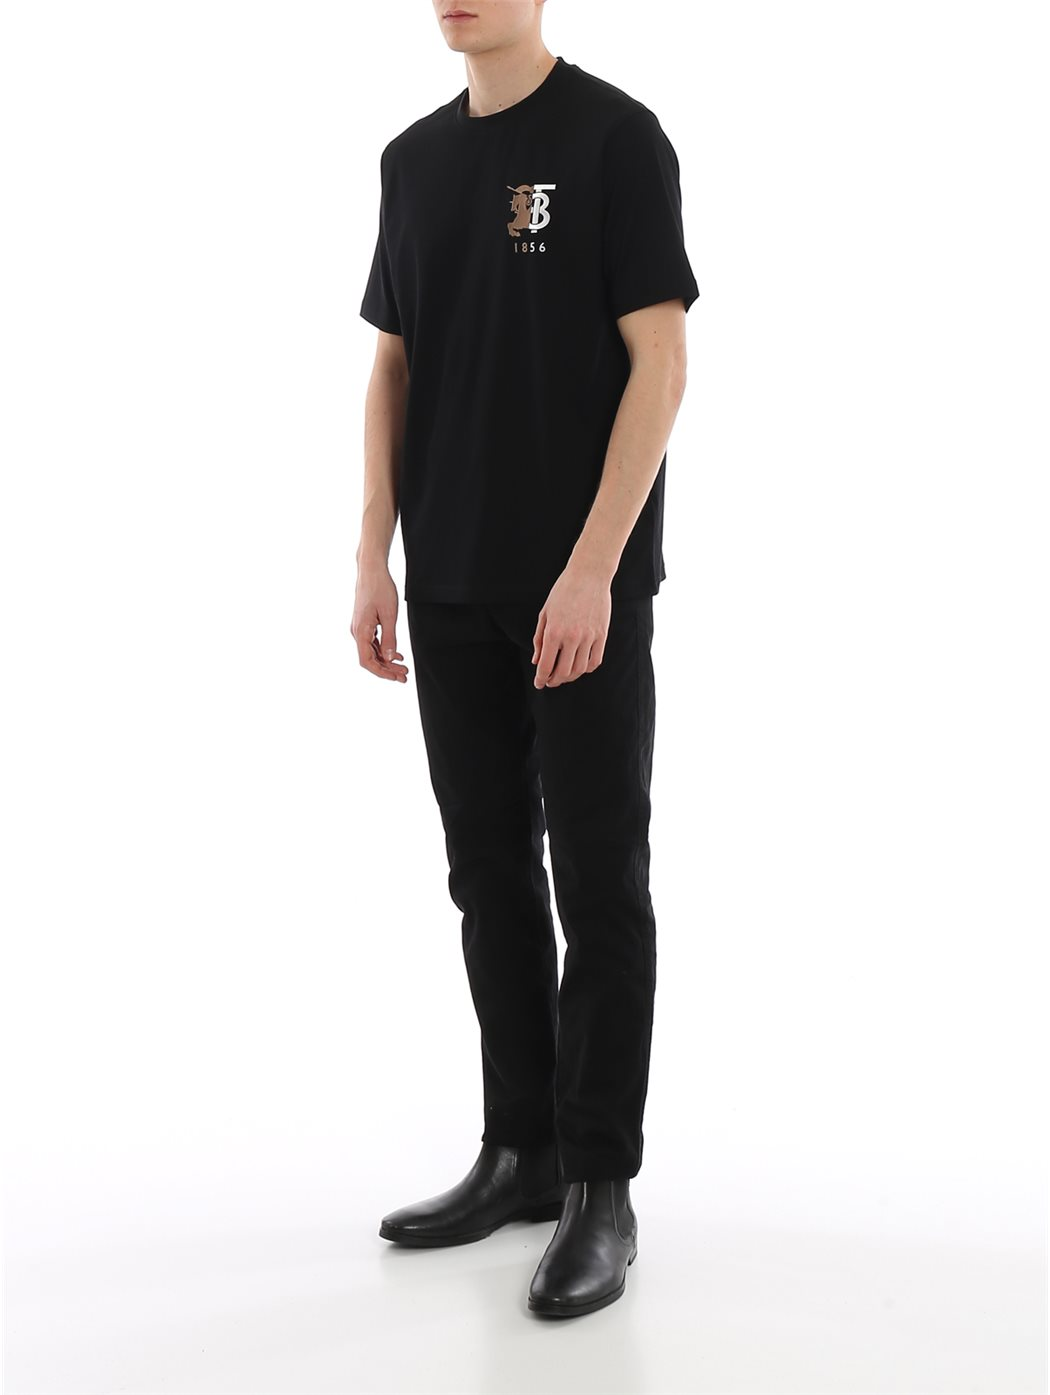 BURBERRY 8023785 Black T-SHIRT